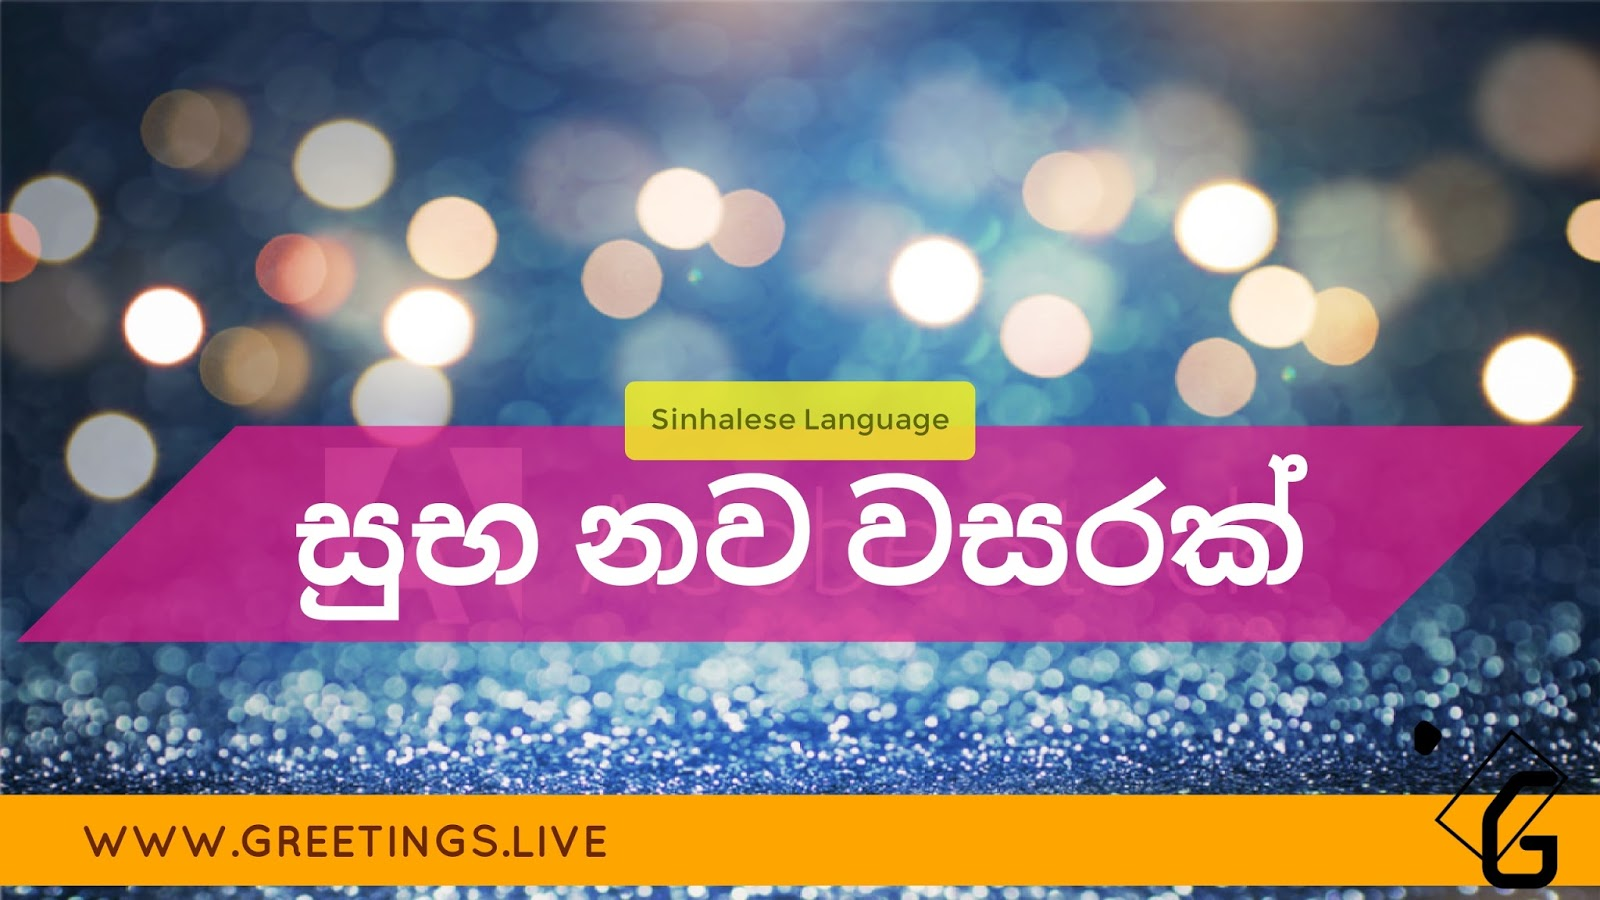 2018 new year wishes greetings 2017 new year greetings in sinhalese language 2018 kristyandbryce Gallery